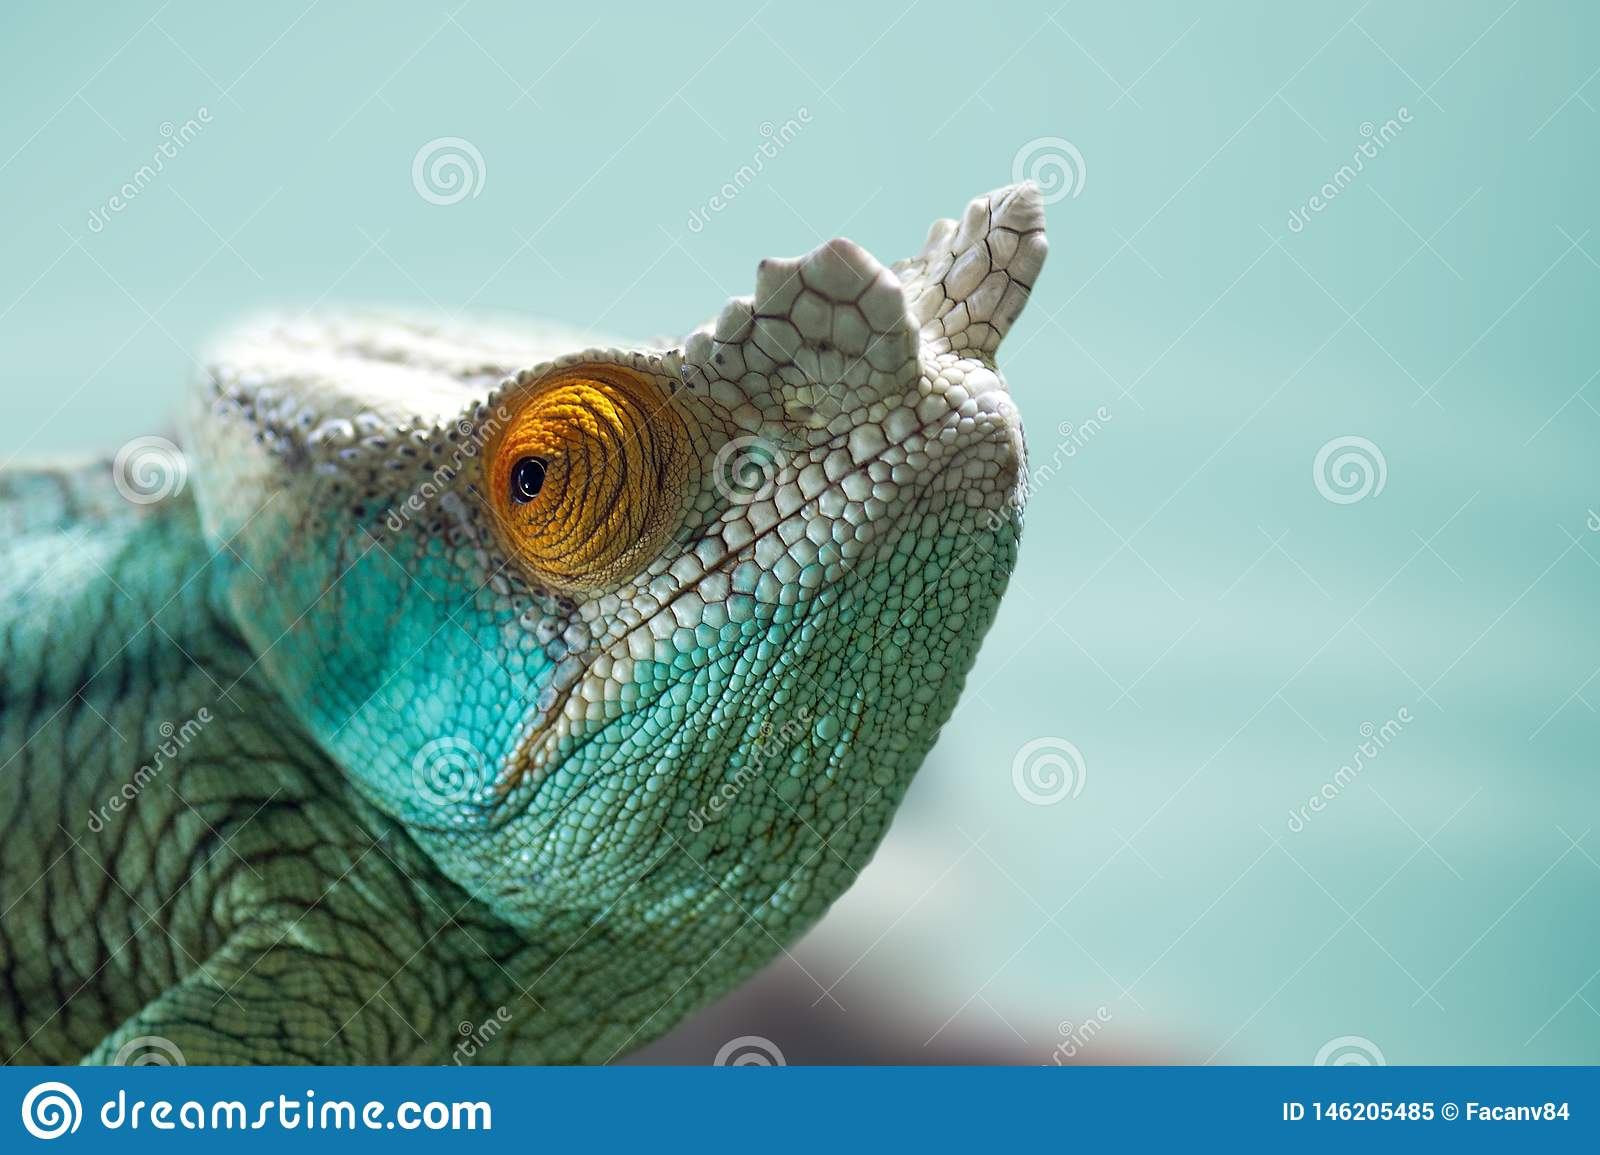 An interesting detail in nature. Portrait of a chameleon closeup. Blue colors in the baclground.